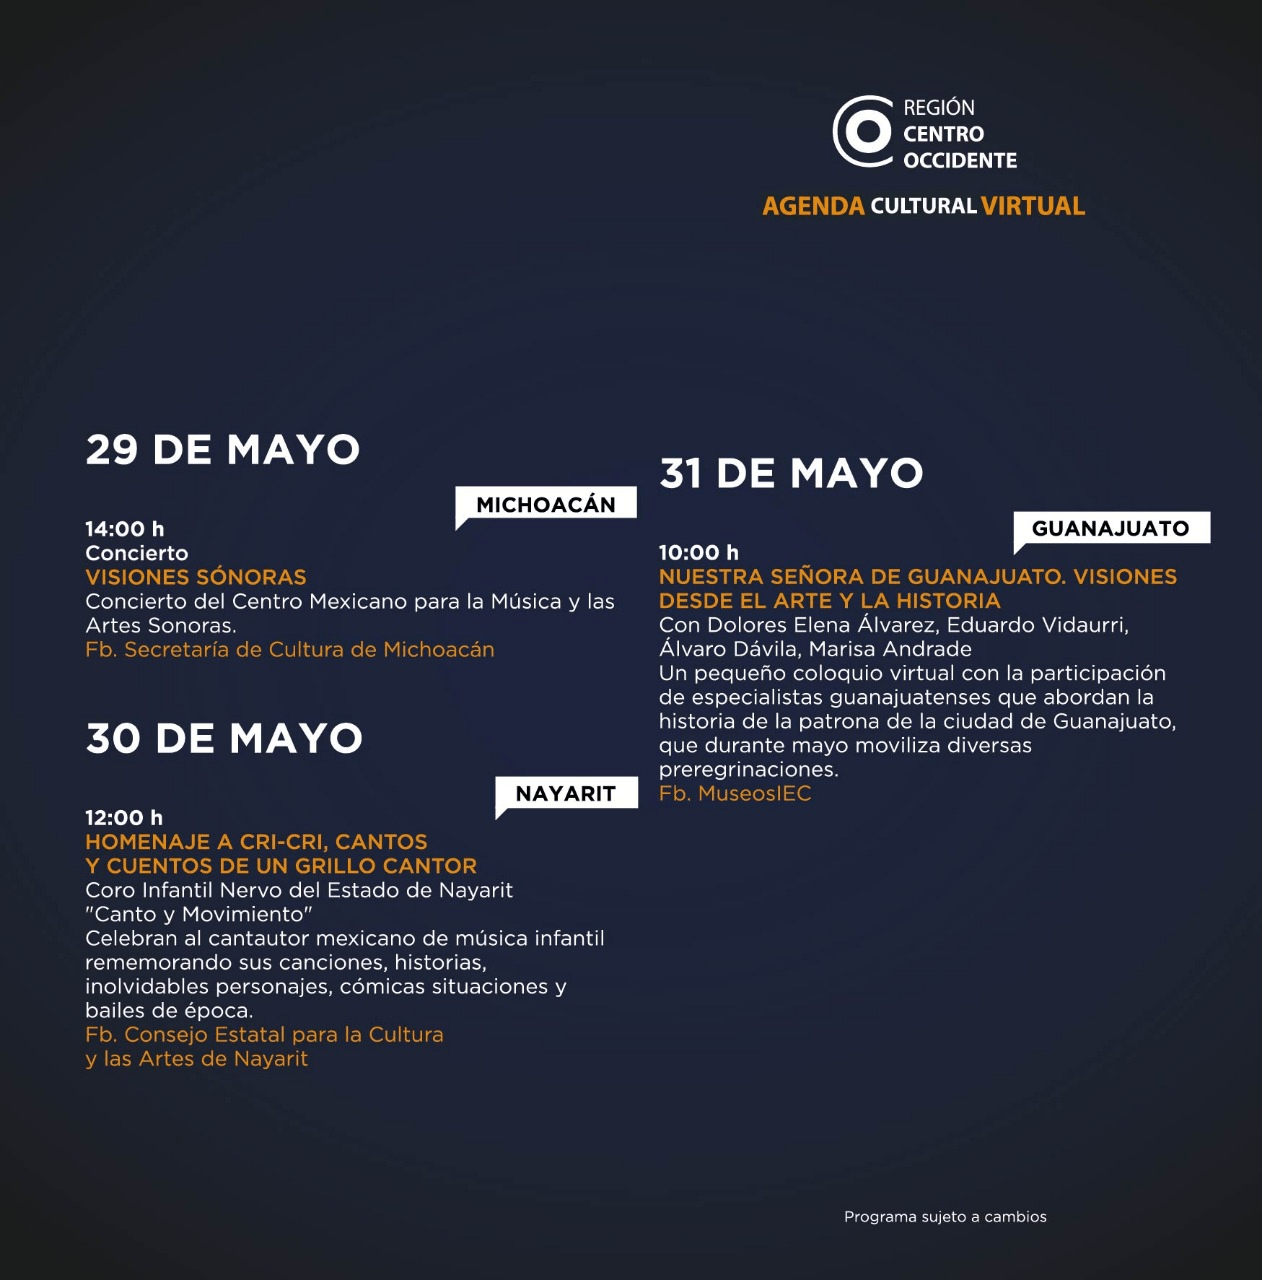 Agenda Centro Occidente 4